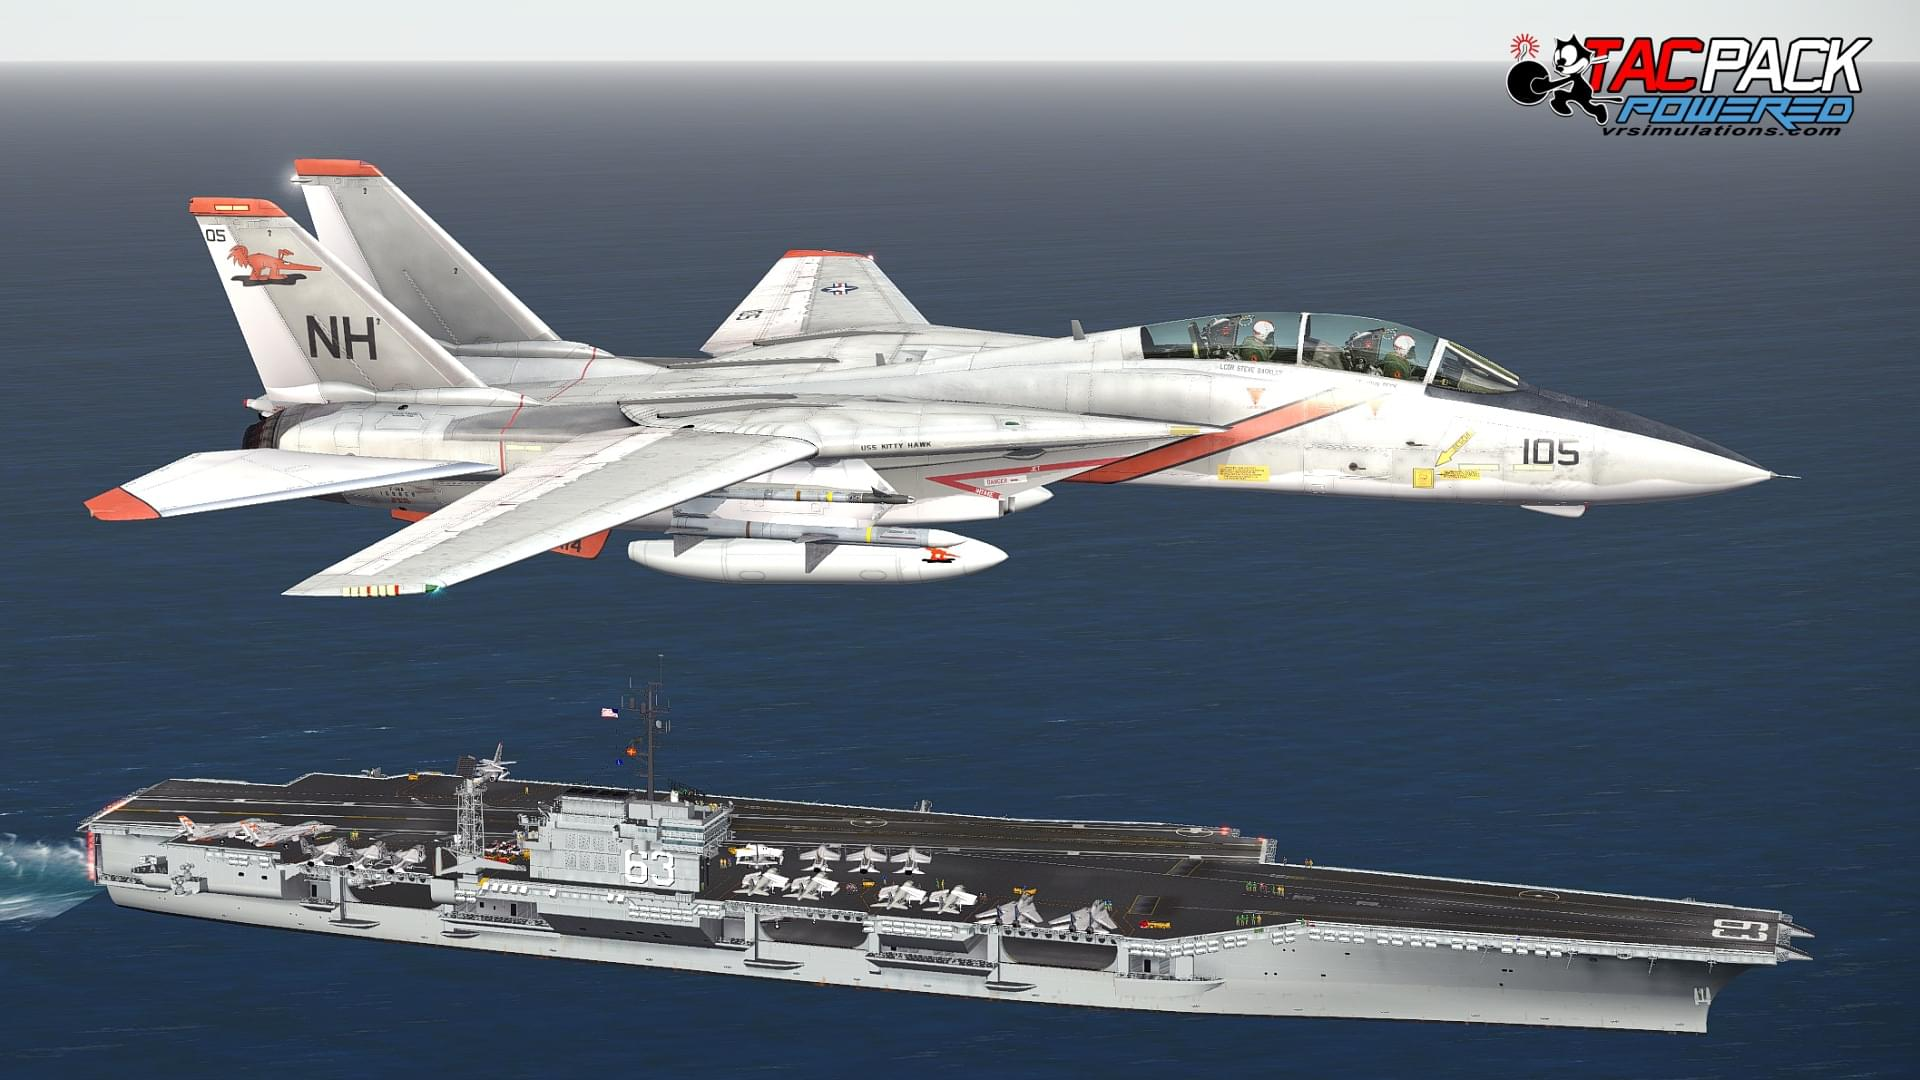 FSX/P3D News ONLY (not discussion) - Page 31 - ED Forums